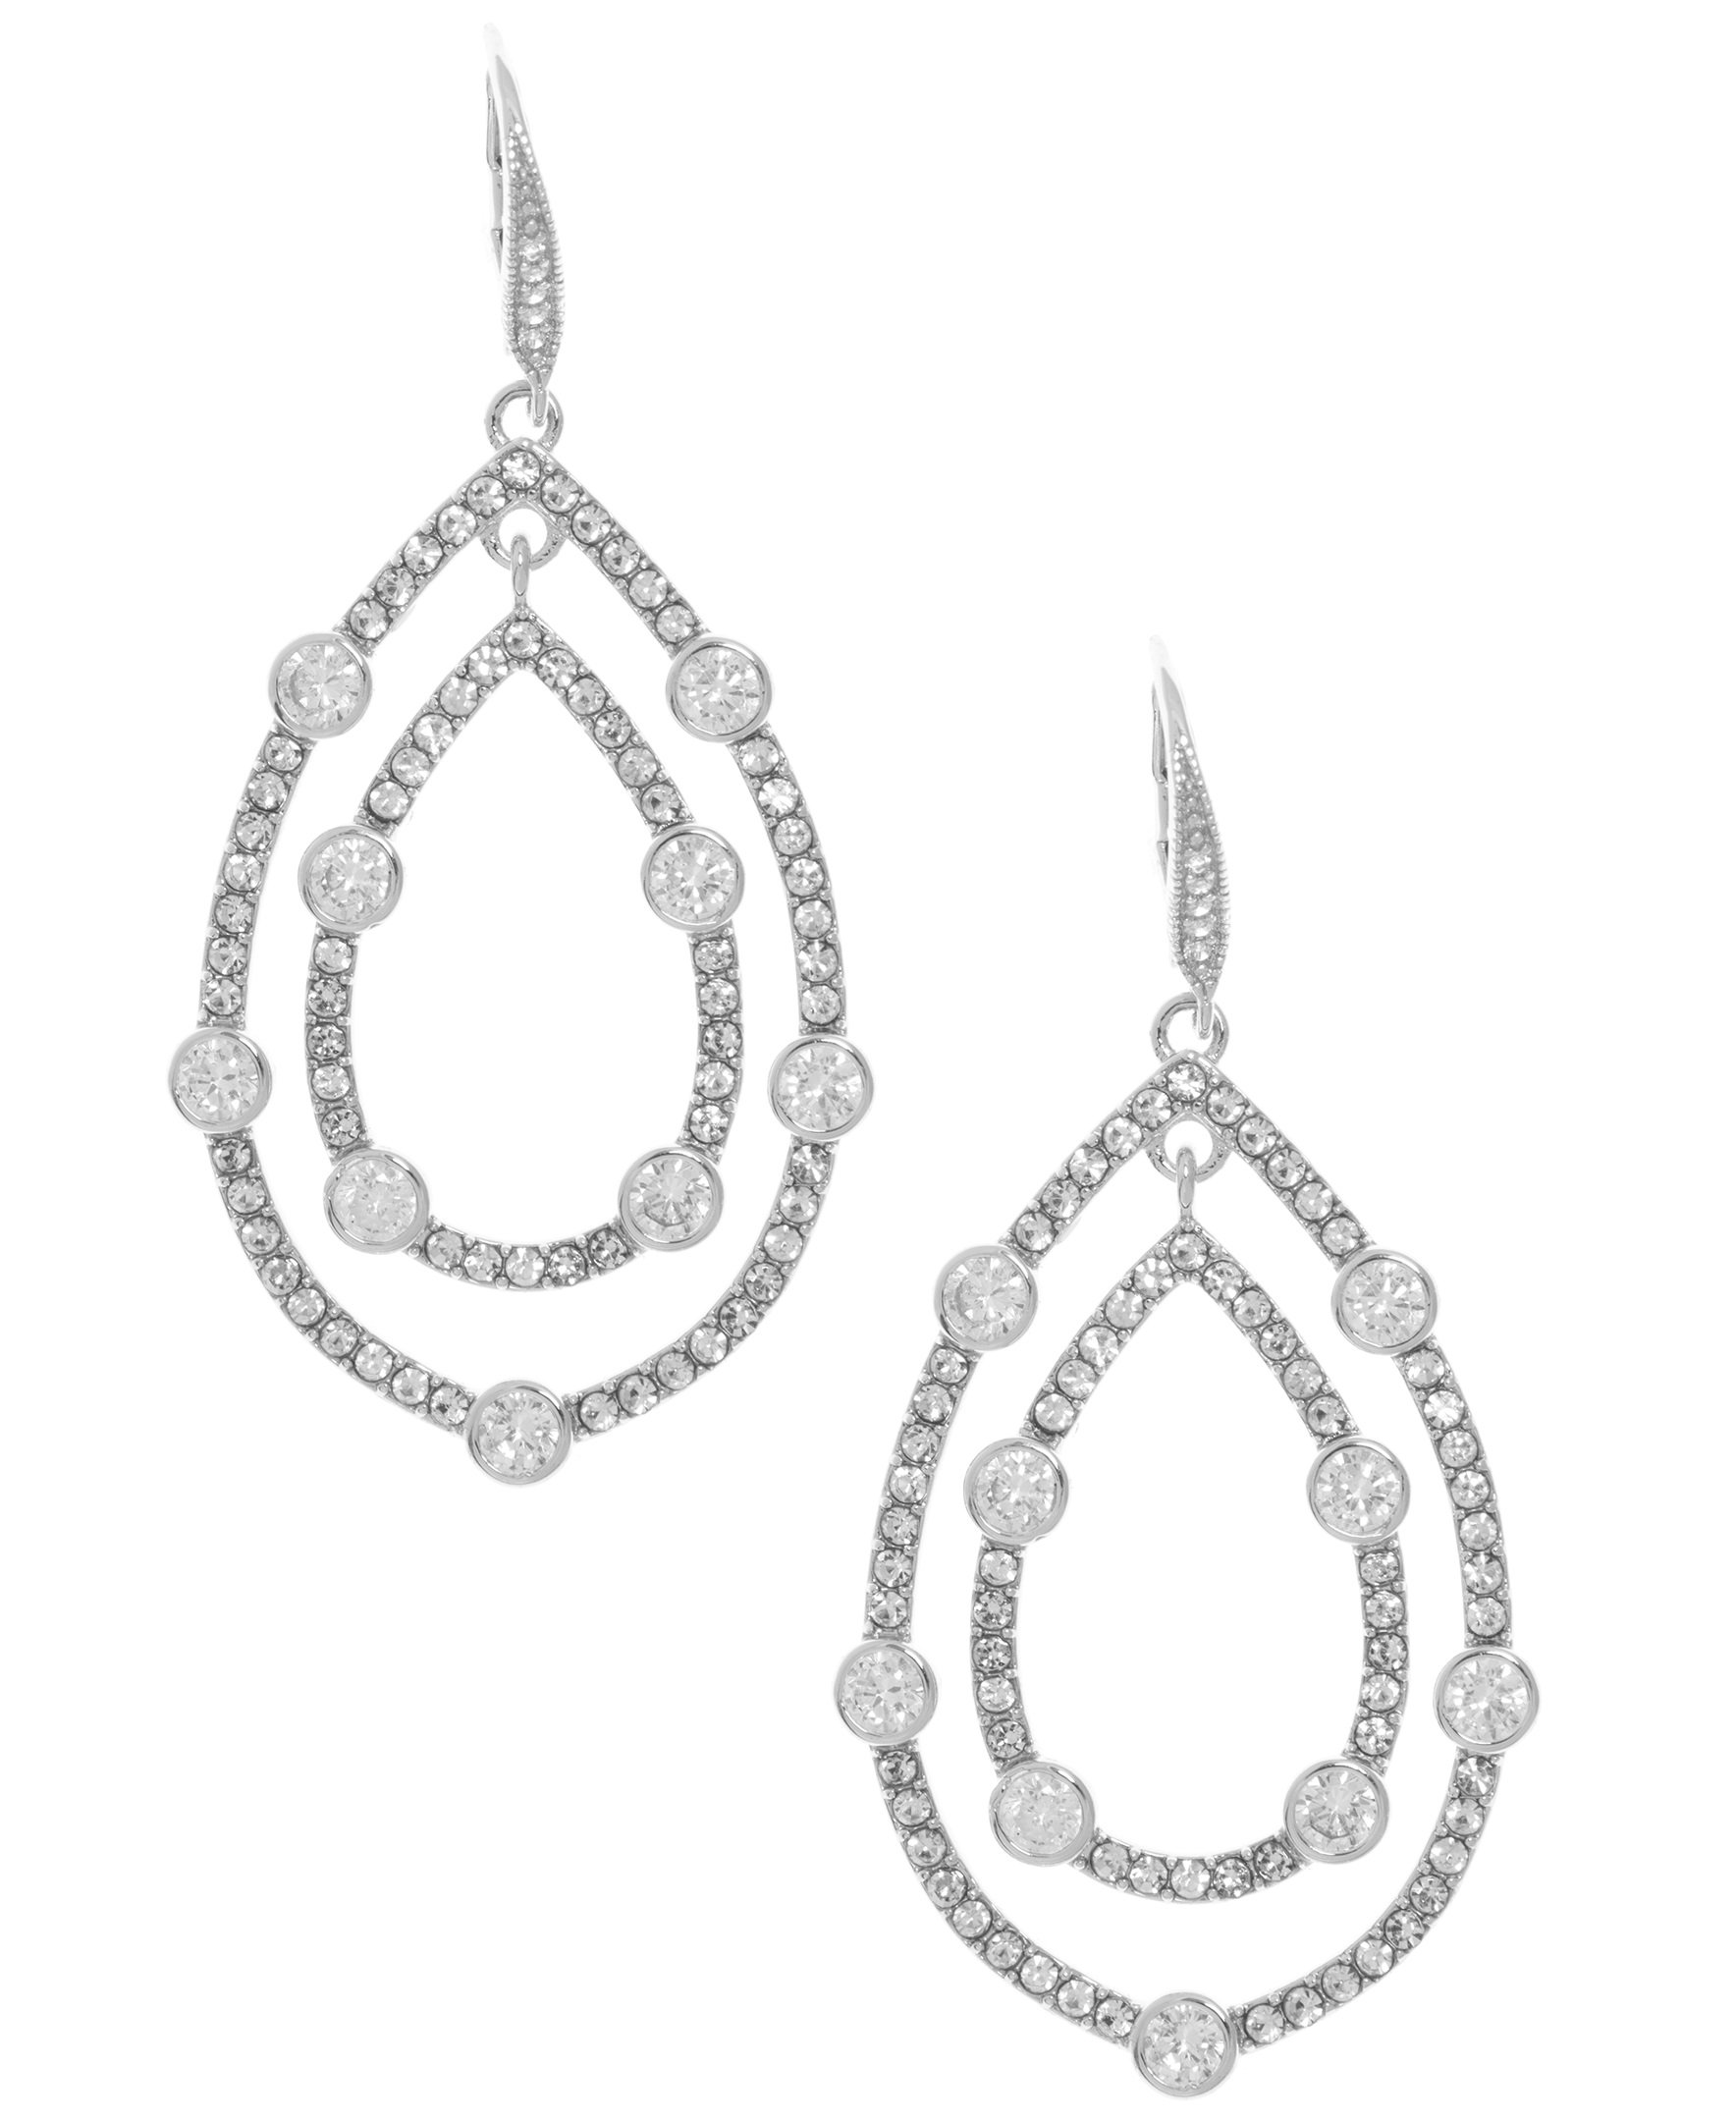 Anne Klein Women's Silver Tone Pave Orbital Drop Earrings, Silver Tone, One Size